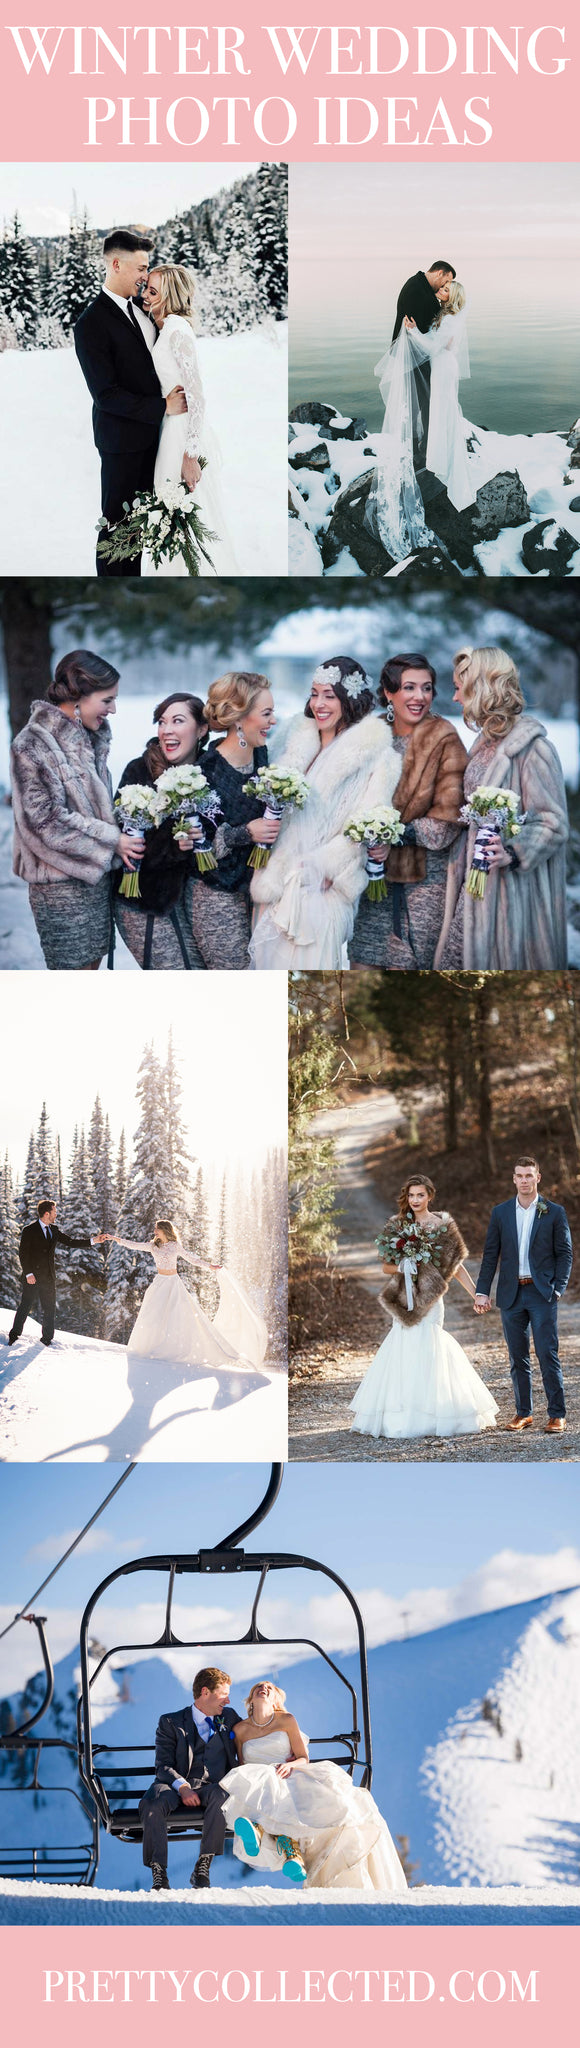 Winter Wedding Photo Ideas - Winter Wedding Photography - Pretty Collected